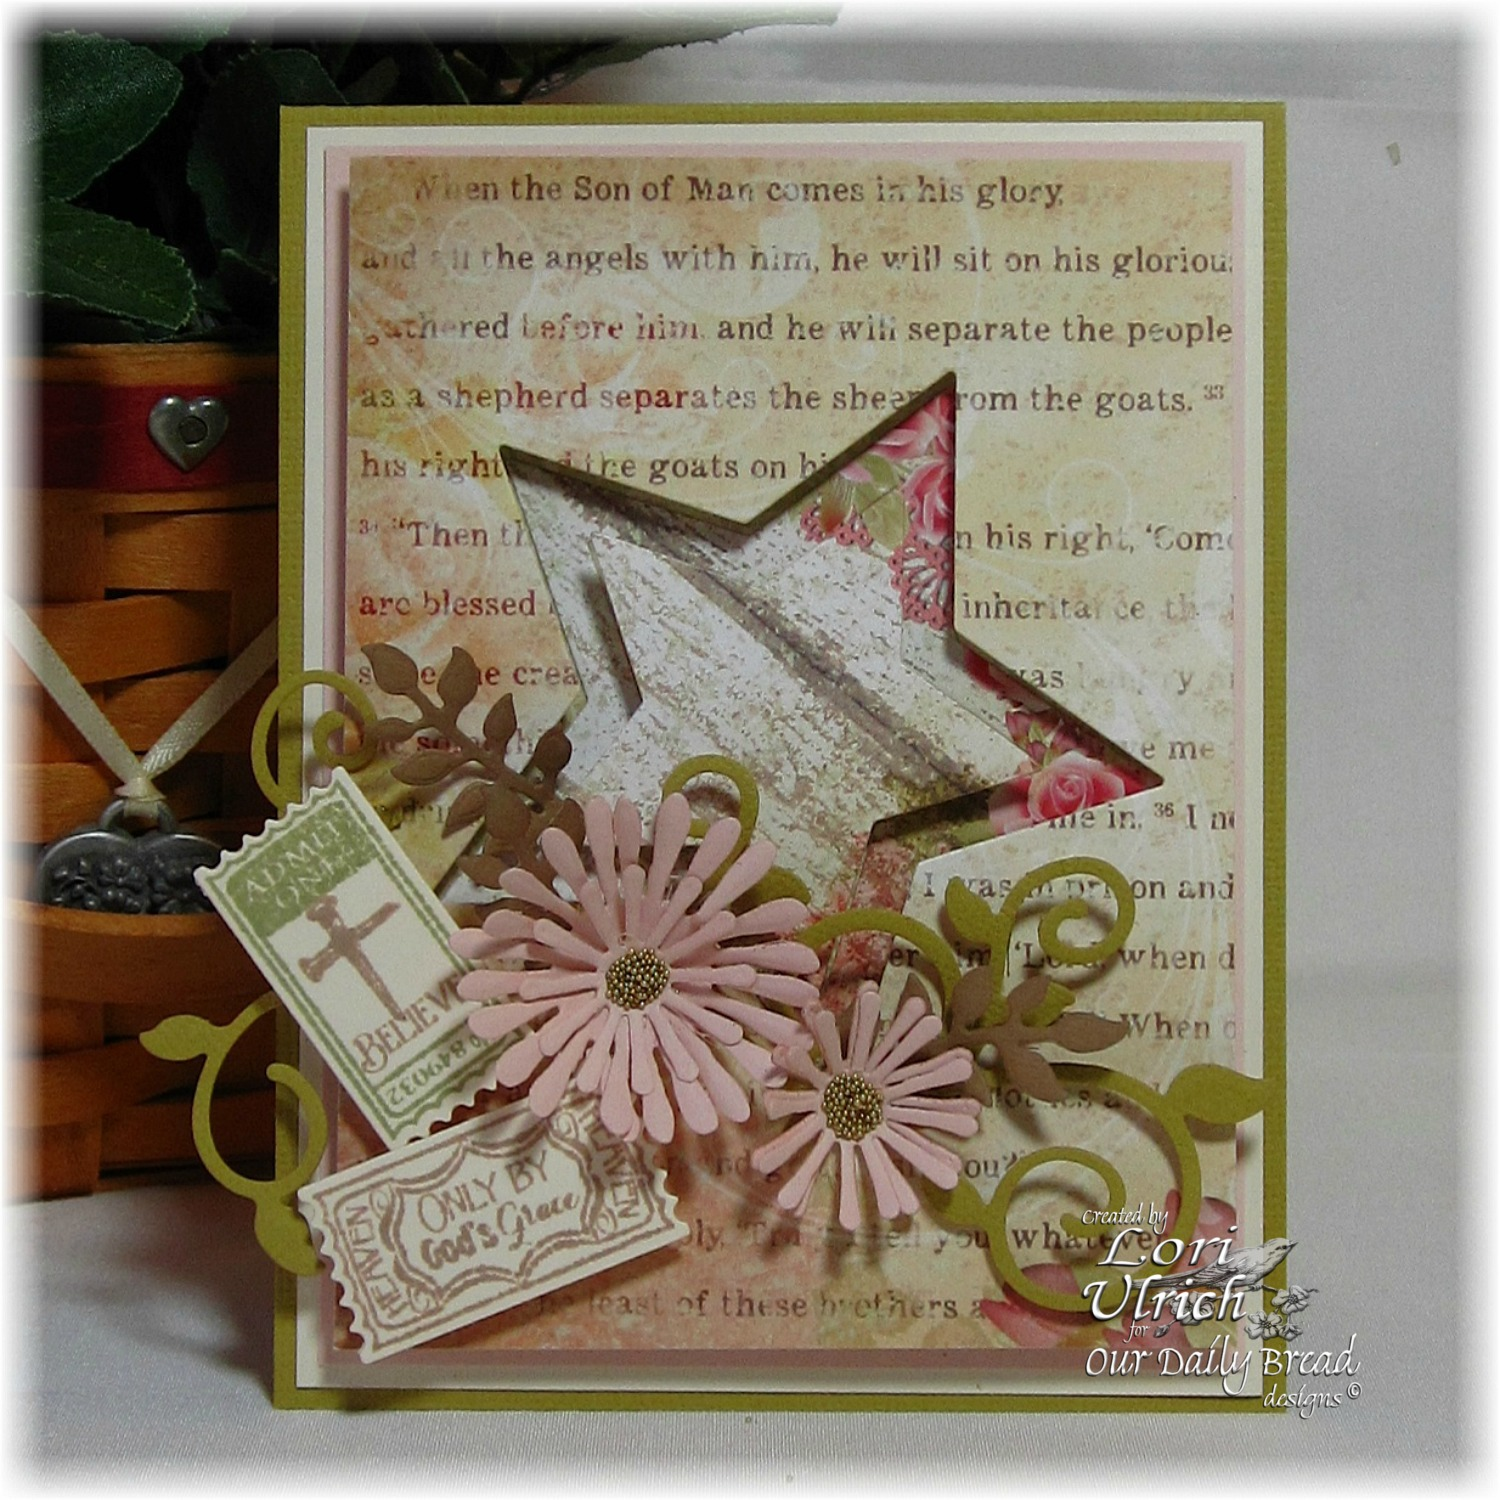 Stamps - Our Daily Bread Designs Admit Three, Admit One, ODBD Custom Mini Tags Dies, ODBD Custom Sparkling Stars Dies, ODBD Custom Fancy Foliage Die, ODBD Custom Asters and Leaves Die, ODBD Blushing Rose Paper Collection